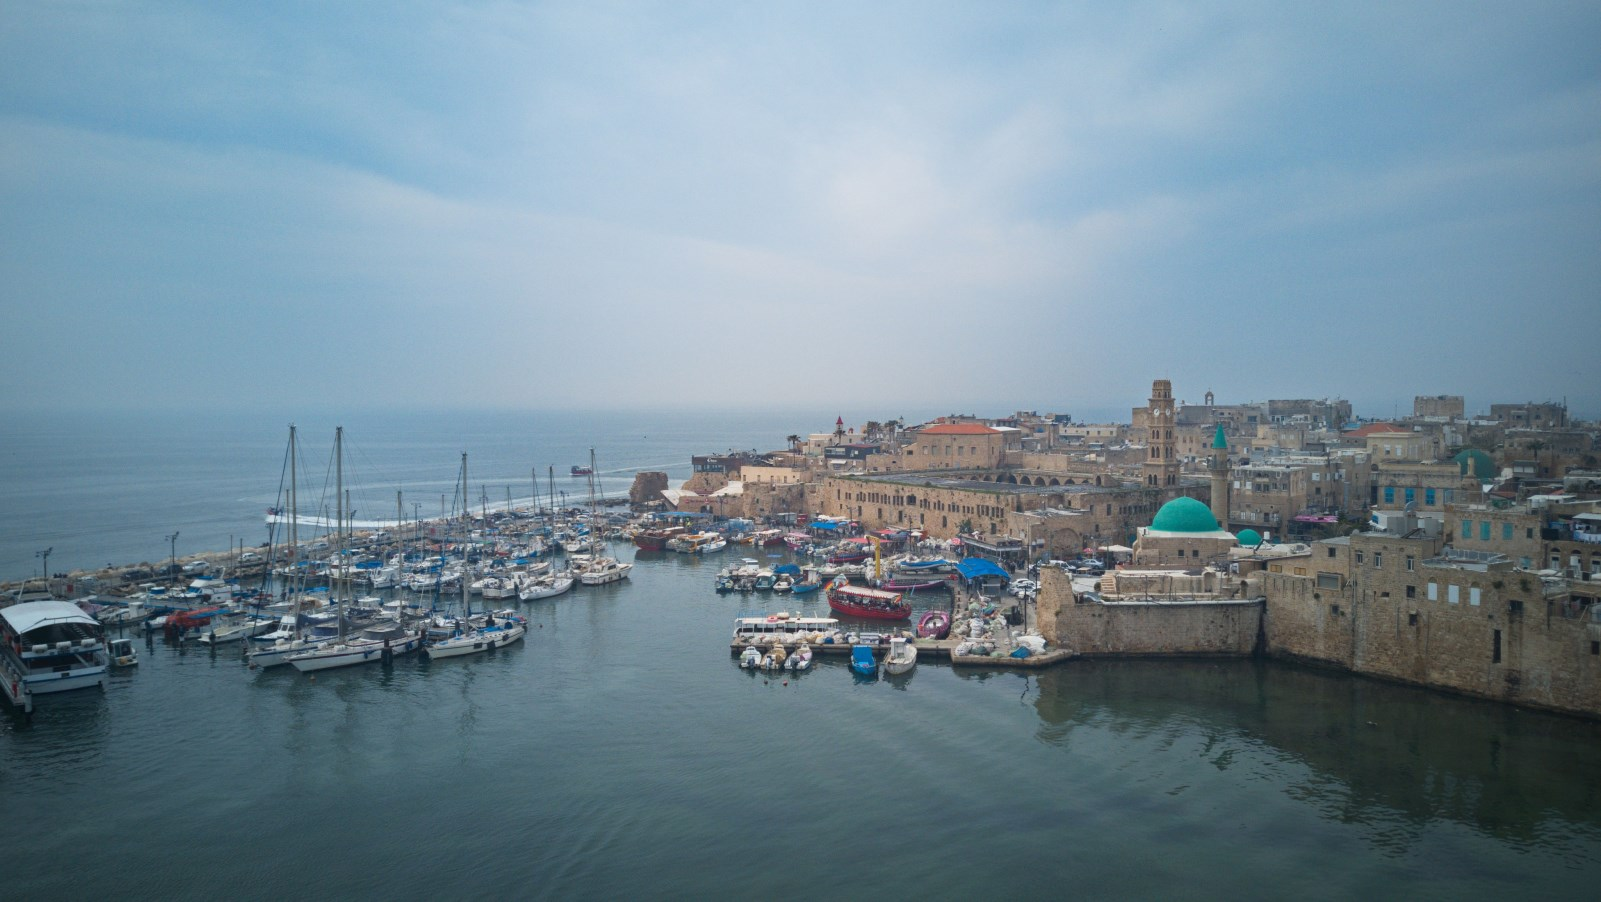 9 unforgettable photos of the historic city of Akko